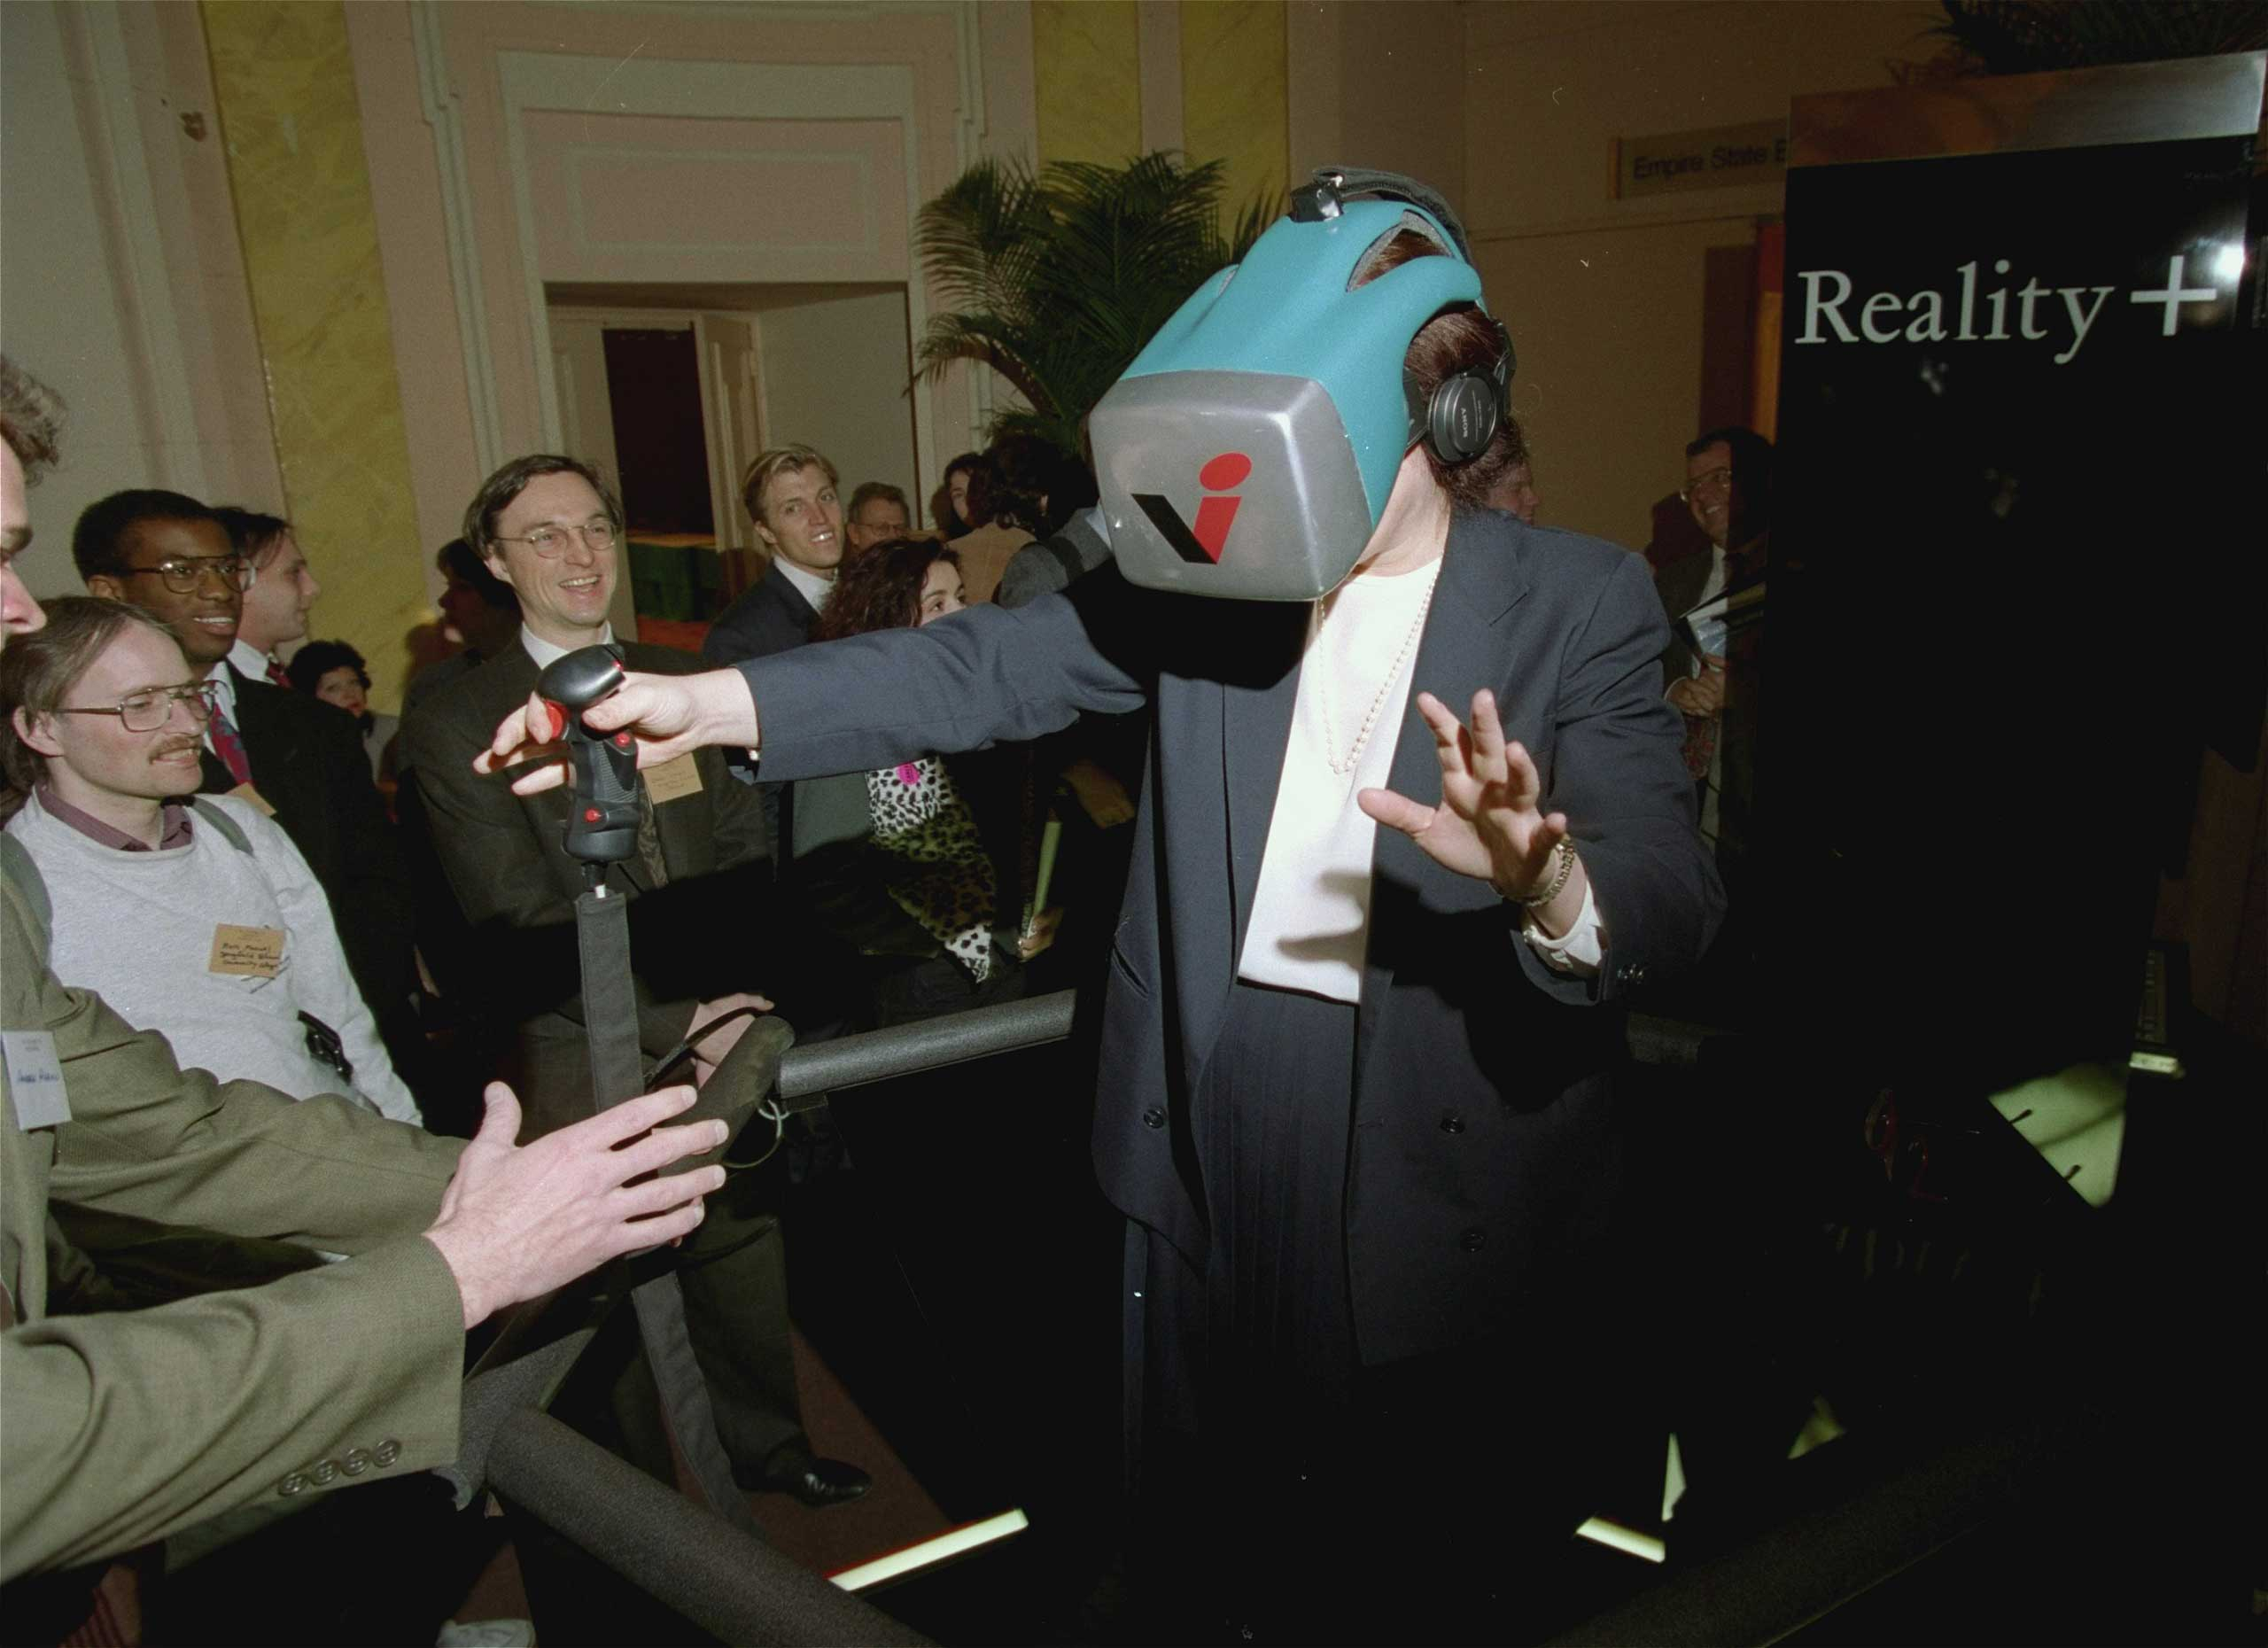 "<strong>1993</strong>                                                                      ""Reality +"" at the Virtual Reality Systems 93 show was described as a next generation, multi-player virtual reality entertainment system that gave a high sense of movement in a computer-generated world revealed in a head-mounted display."